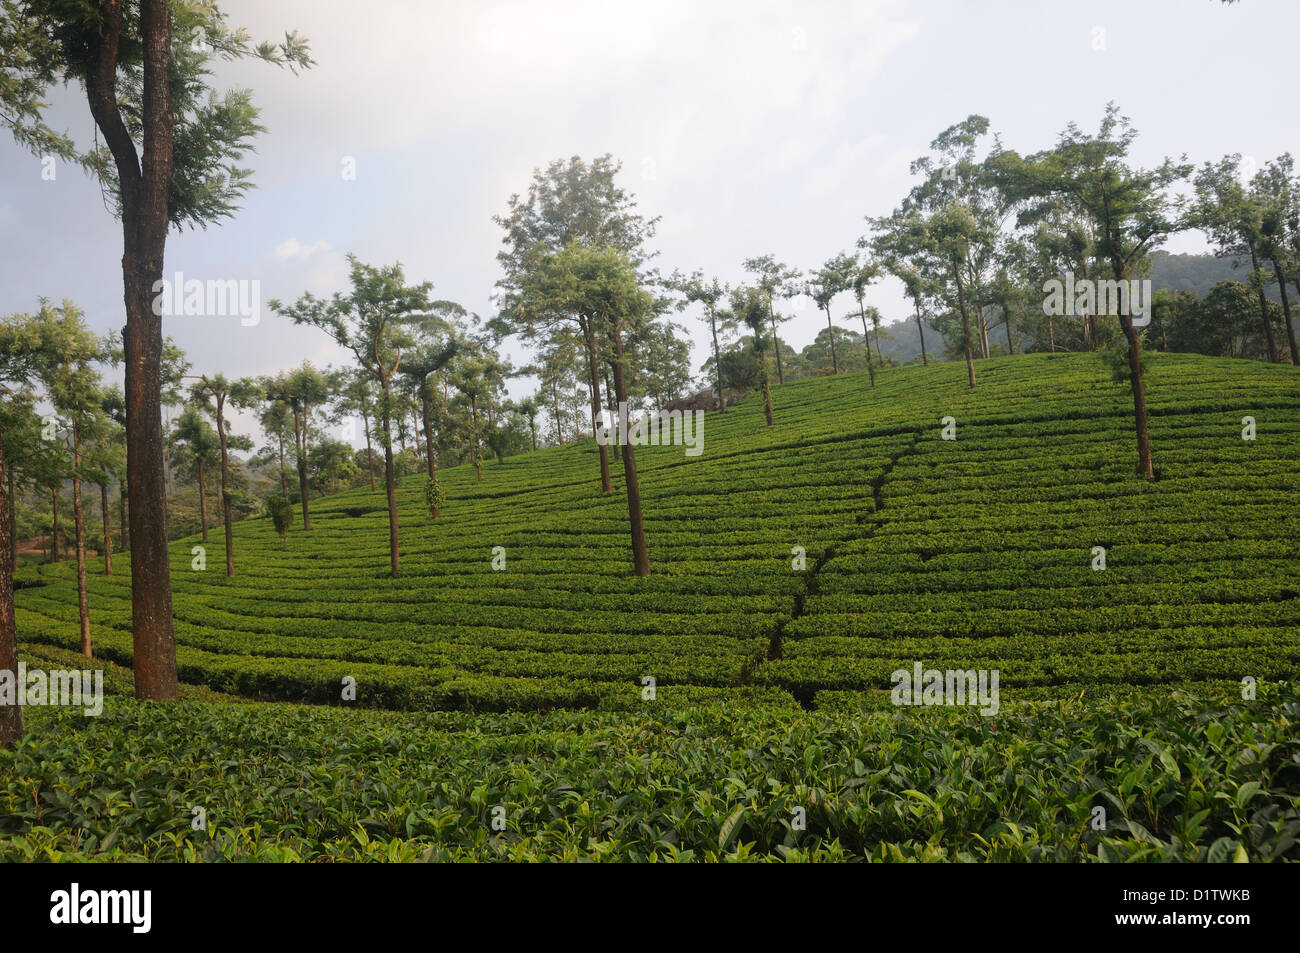 Tea Gardens at Munnar Munnar is a hill station on the Western Ghats, a range of mountains situated in the Idukki - Stock Image